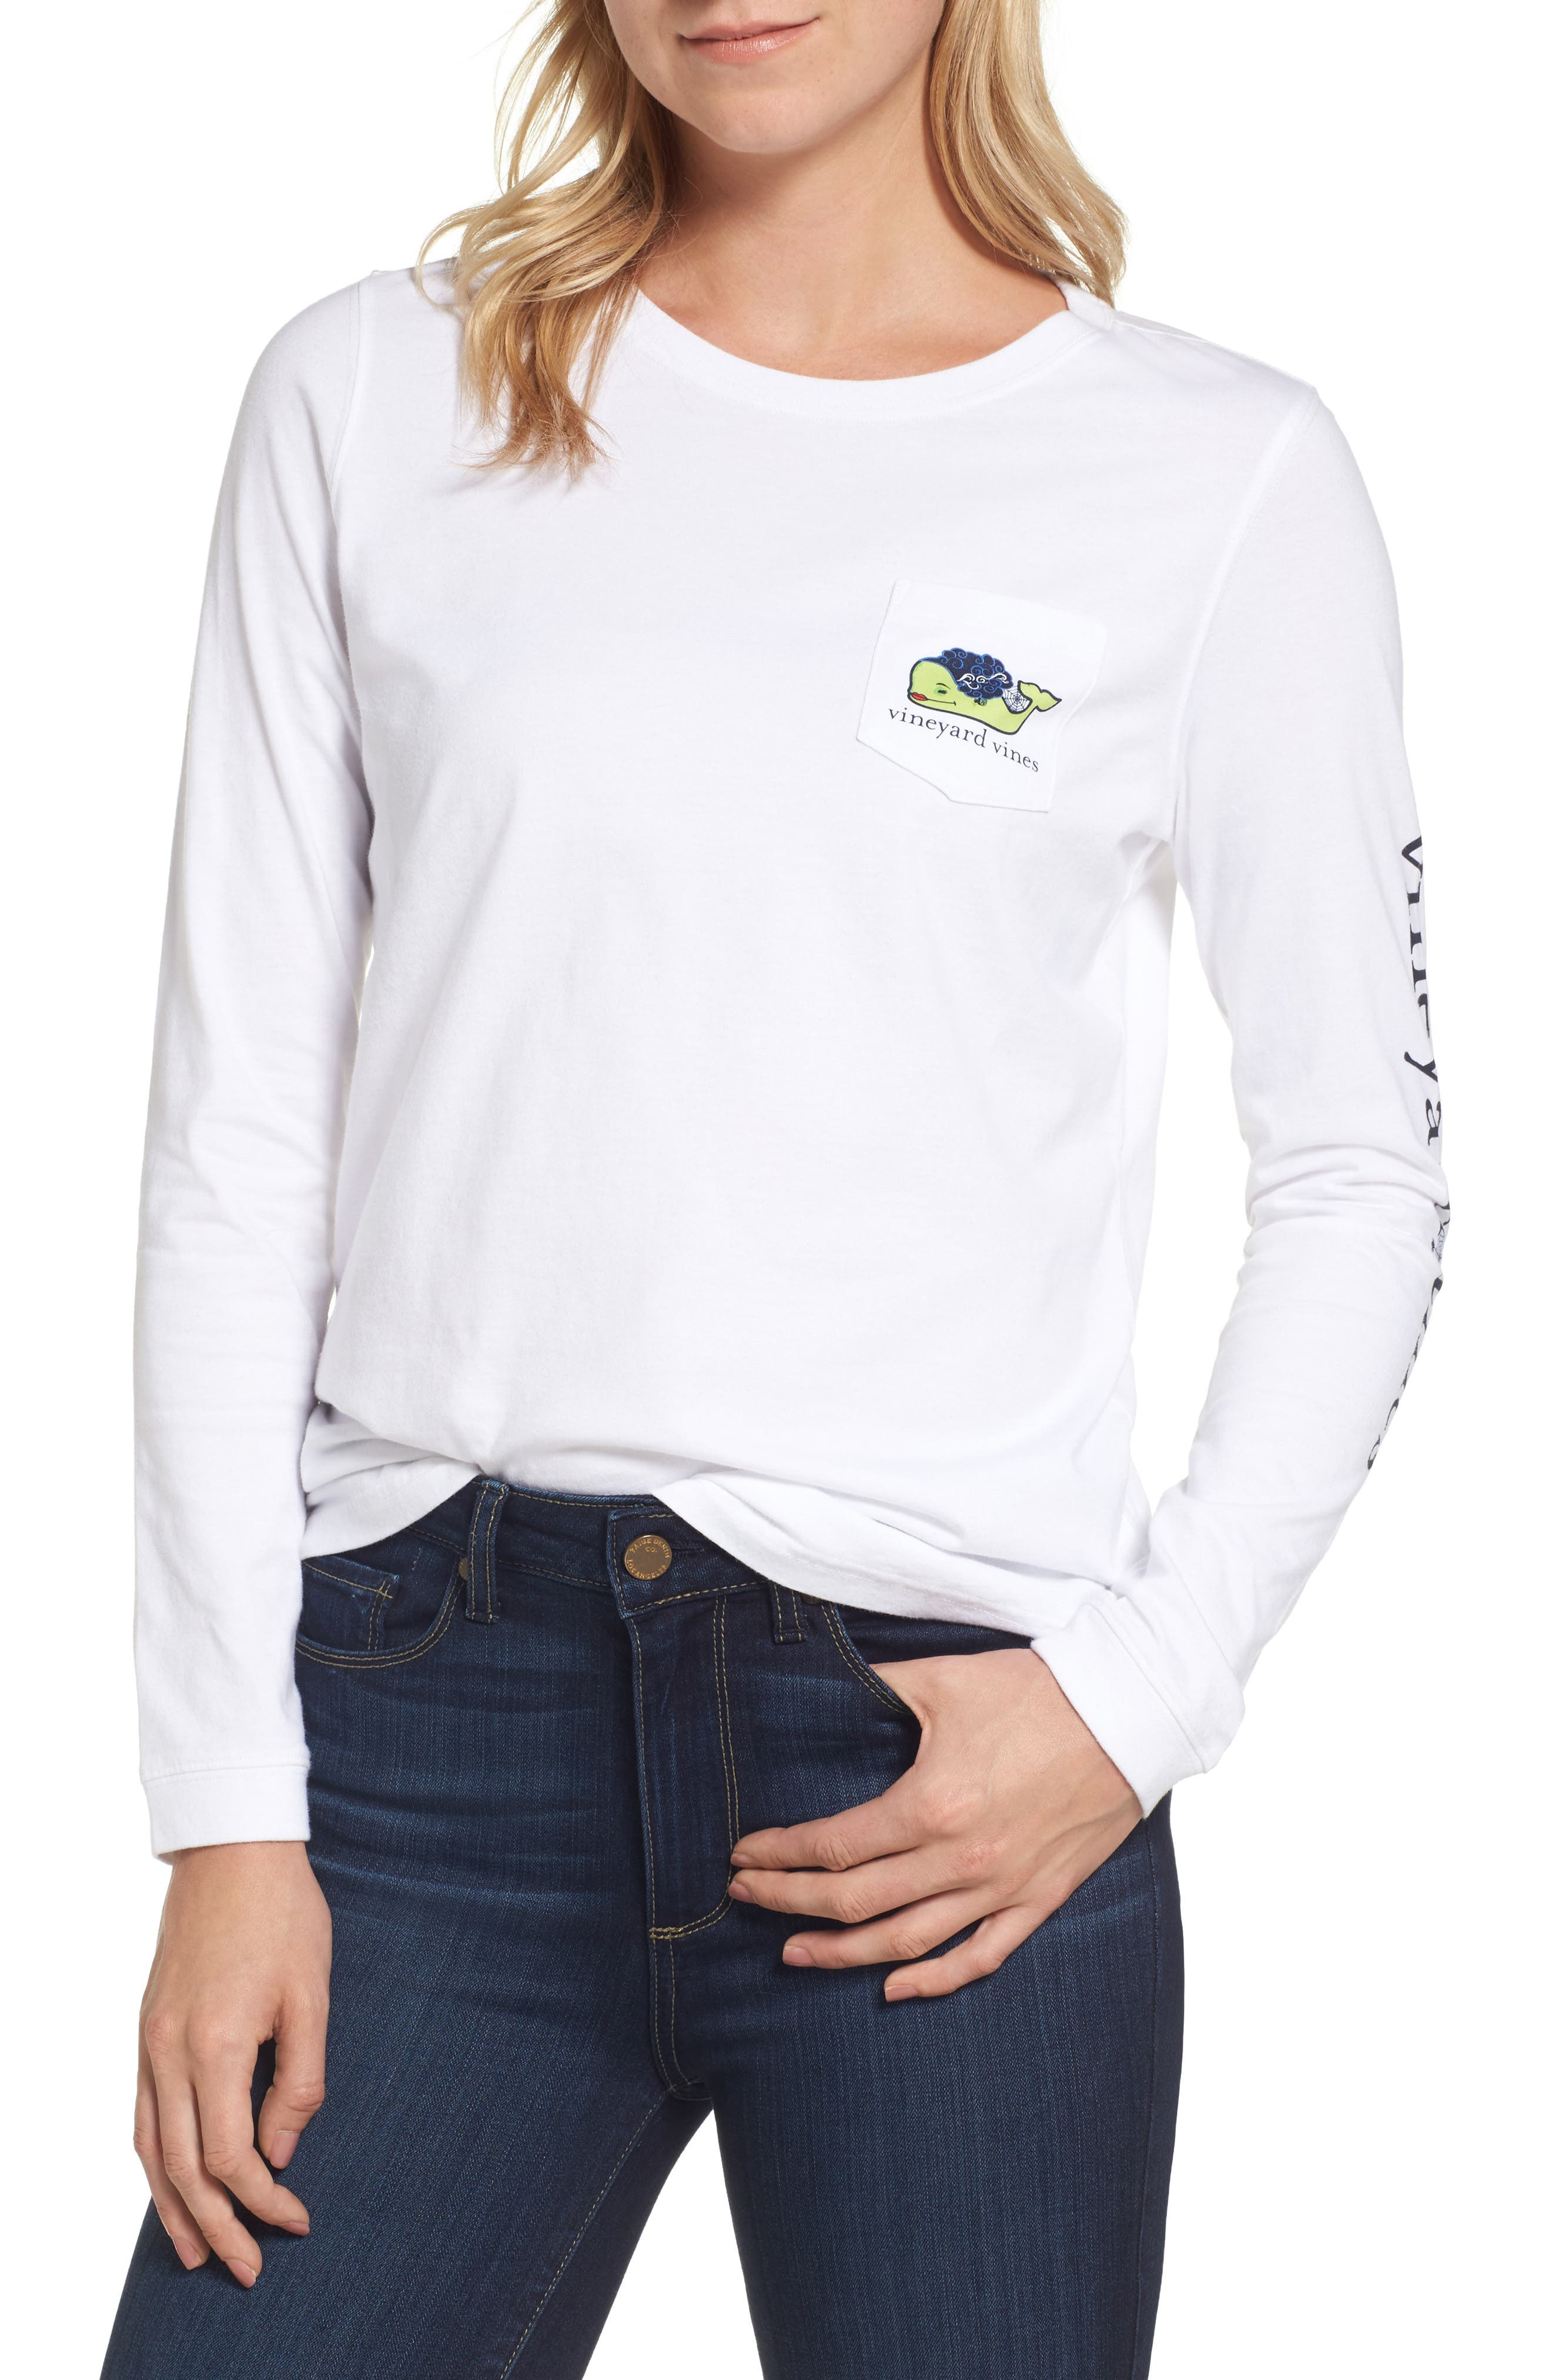 Bride of Frank Whale Pocket Tee,                         Main,                         color, 100